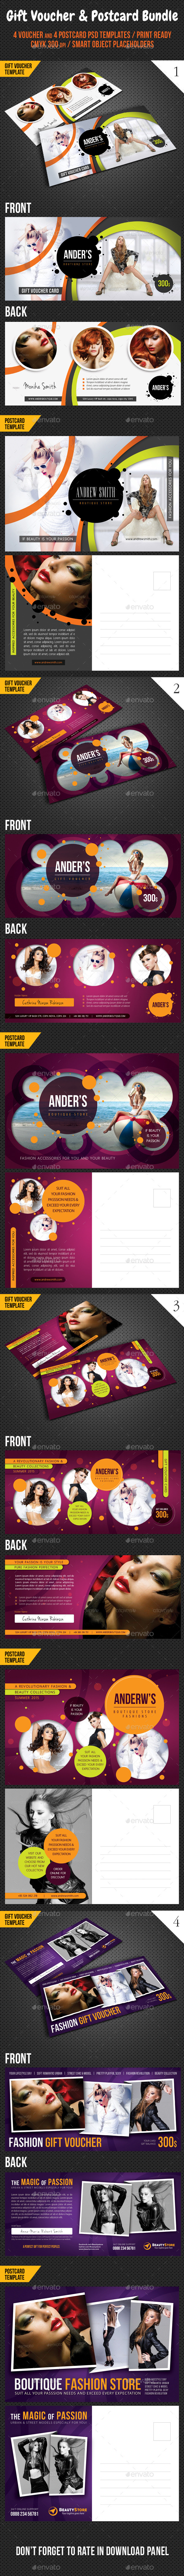 8 in 1 Fashion Gift Voucher and Postcard Bundle - Cards & Invites Print Templates